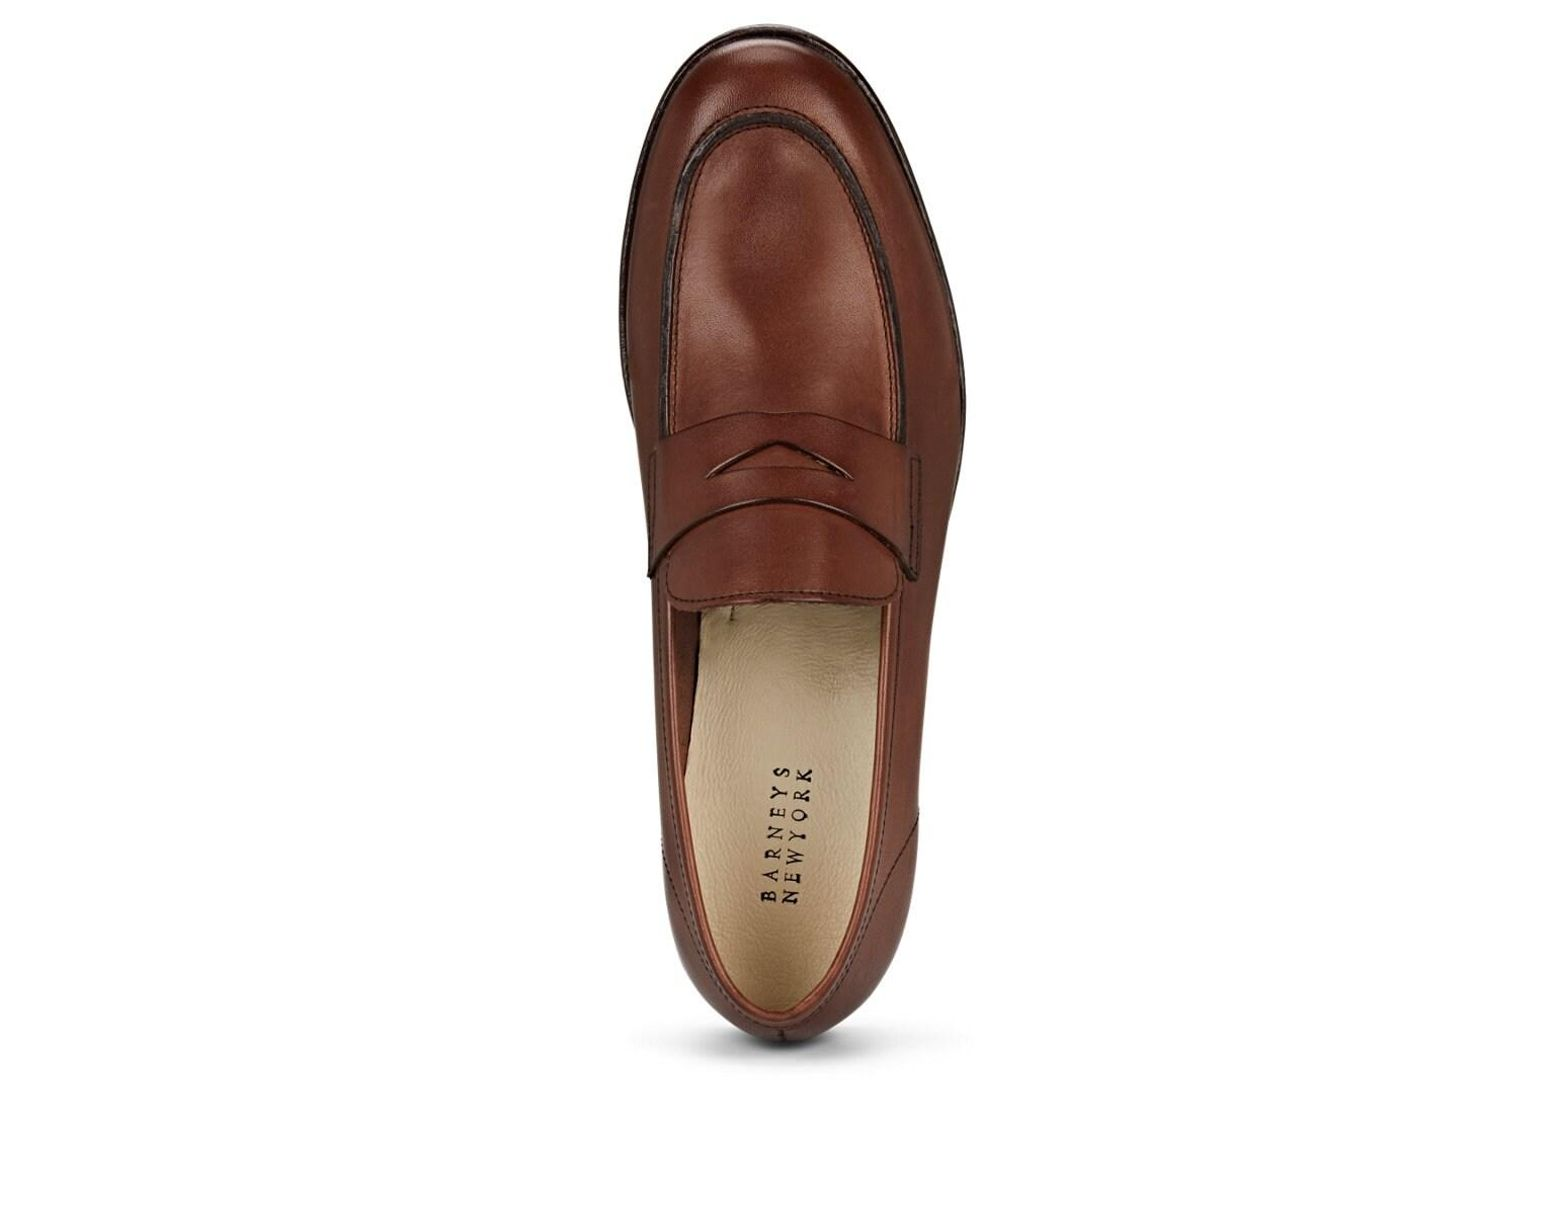 caea3bc42aa52 Barneys New York Dakota Leather Penny Loafers in Brown for Men - Lyst